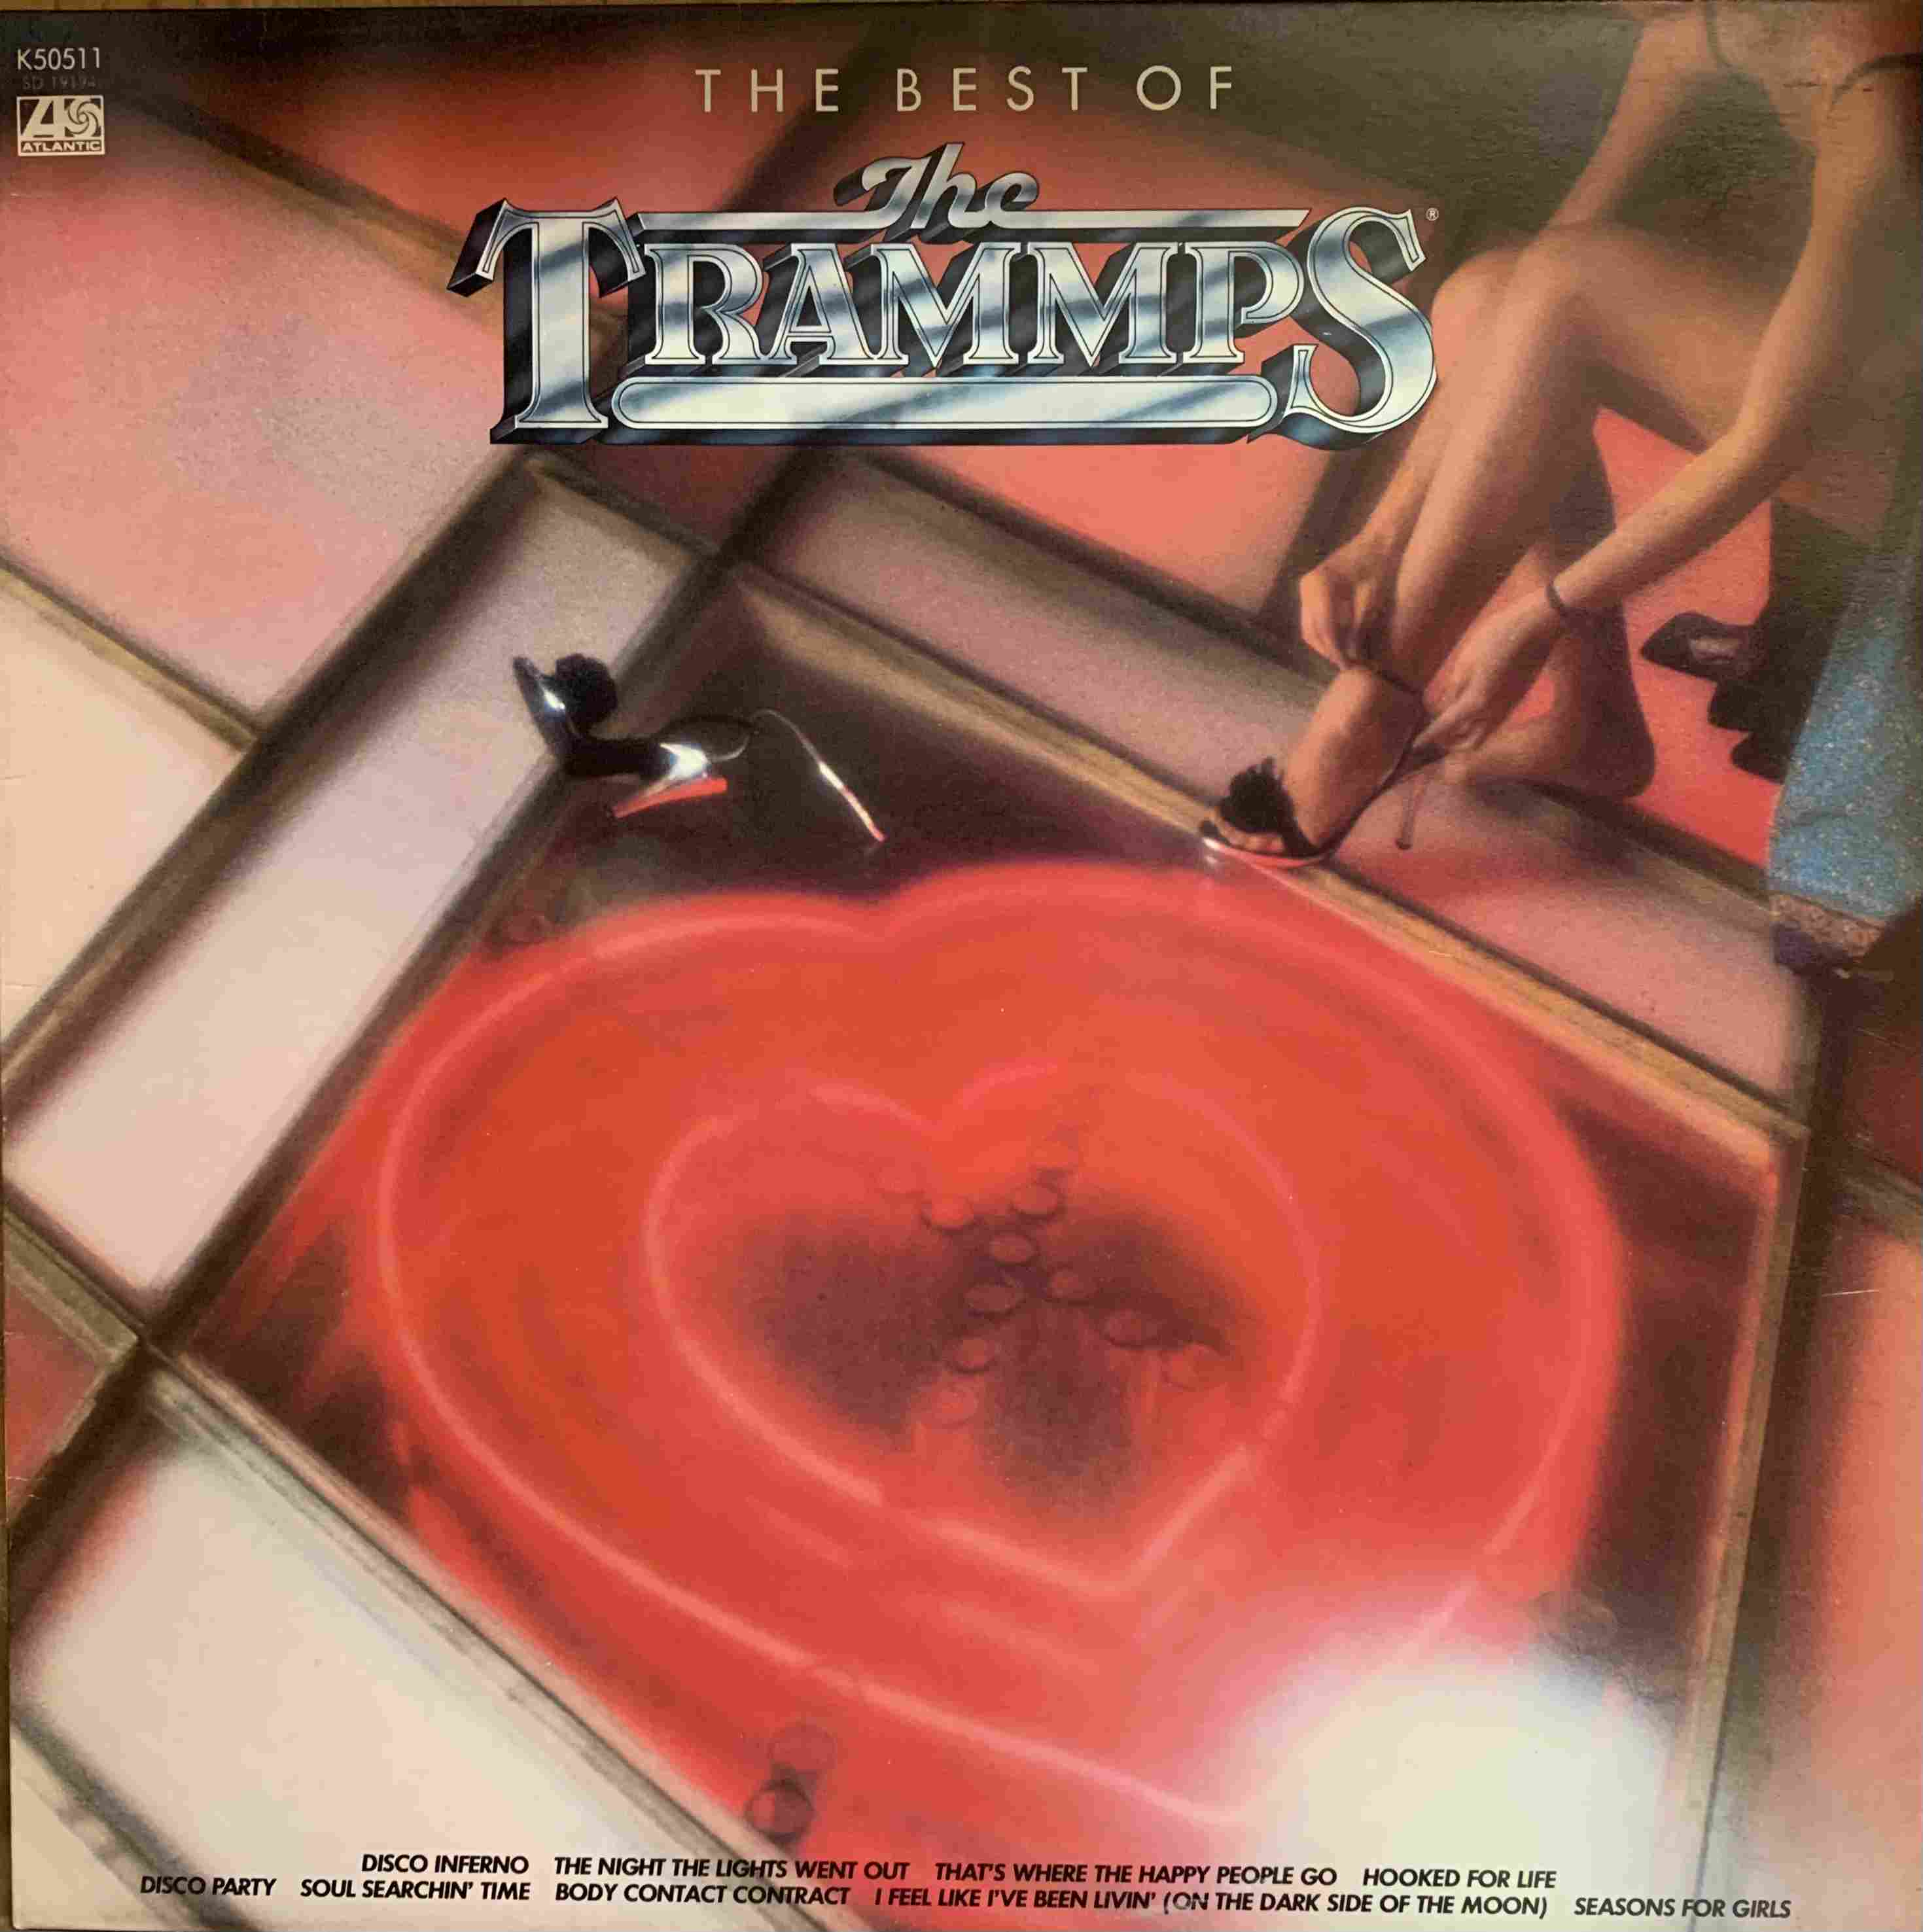 The Best Of The Trammps